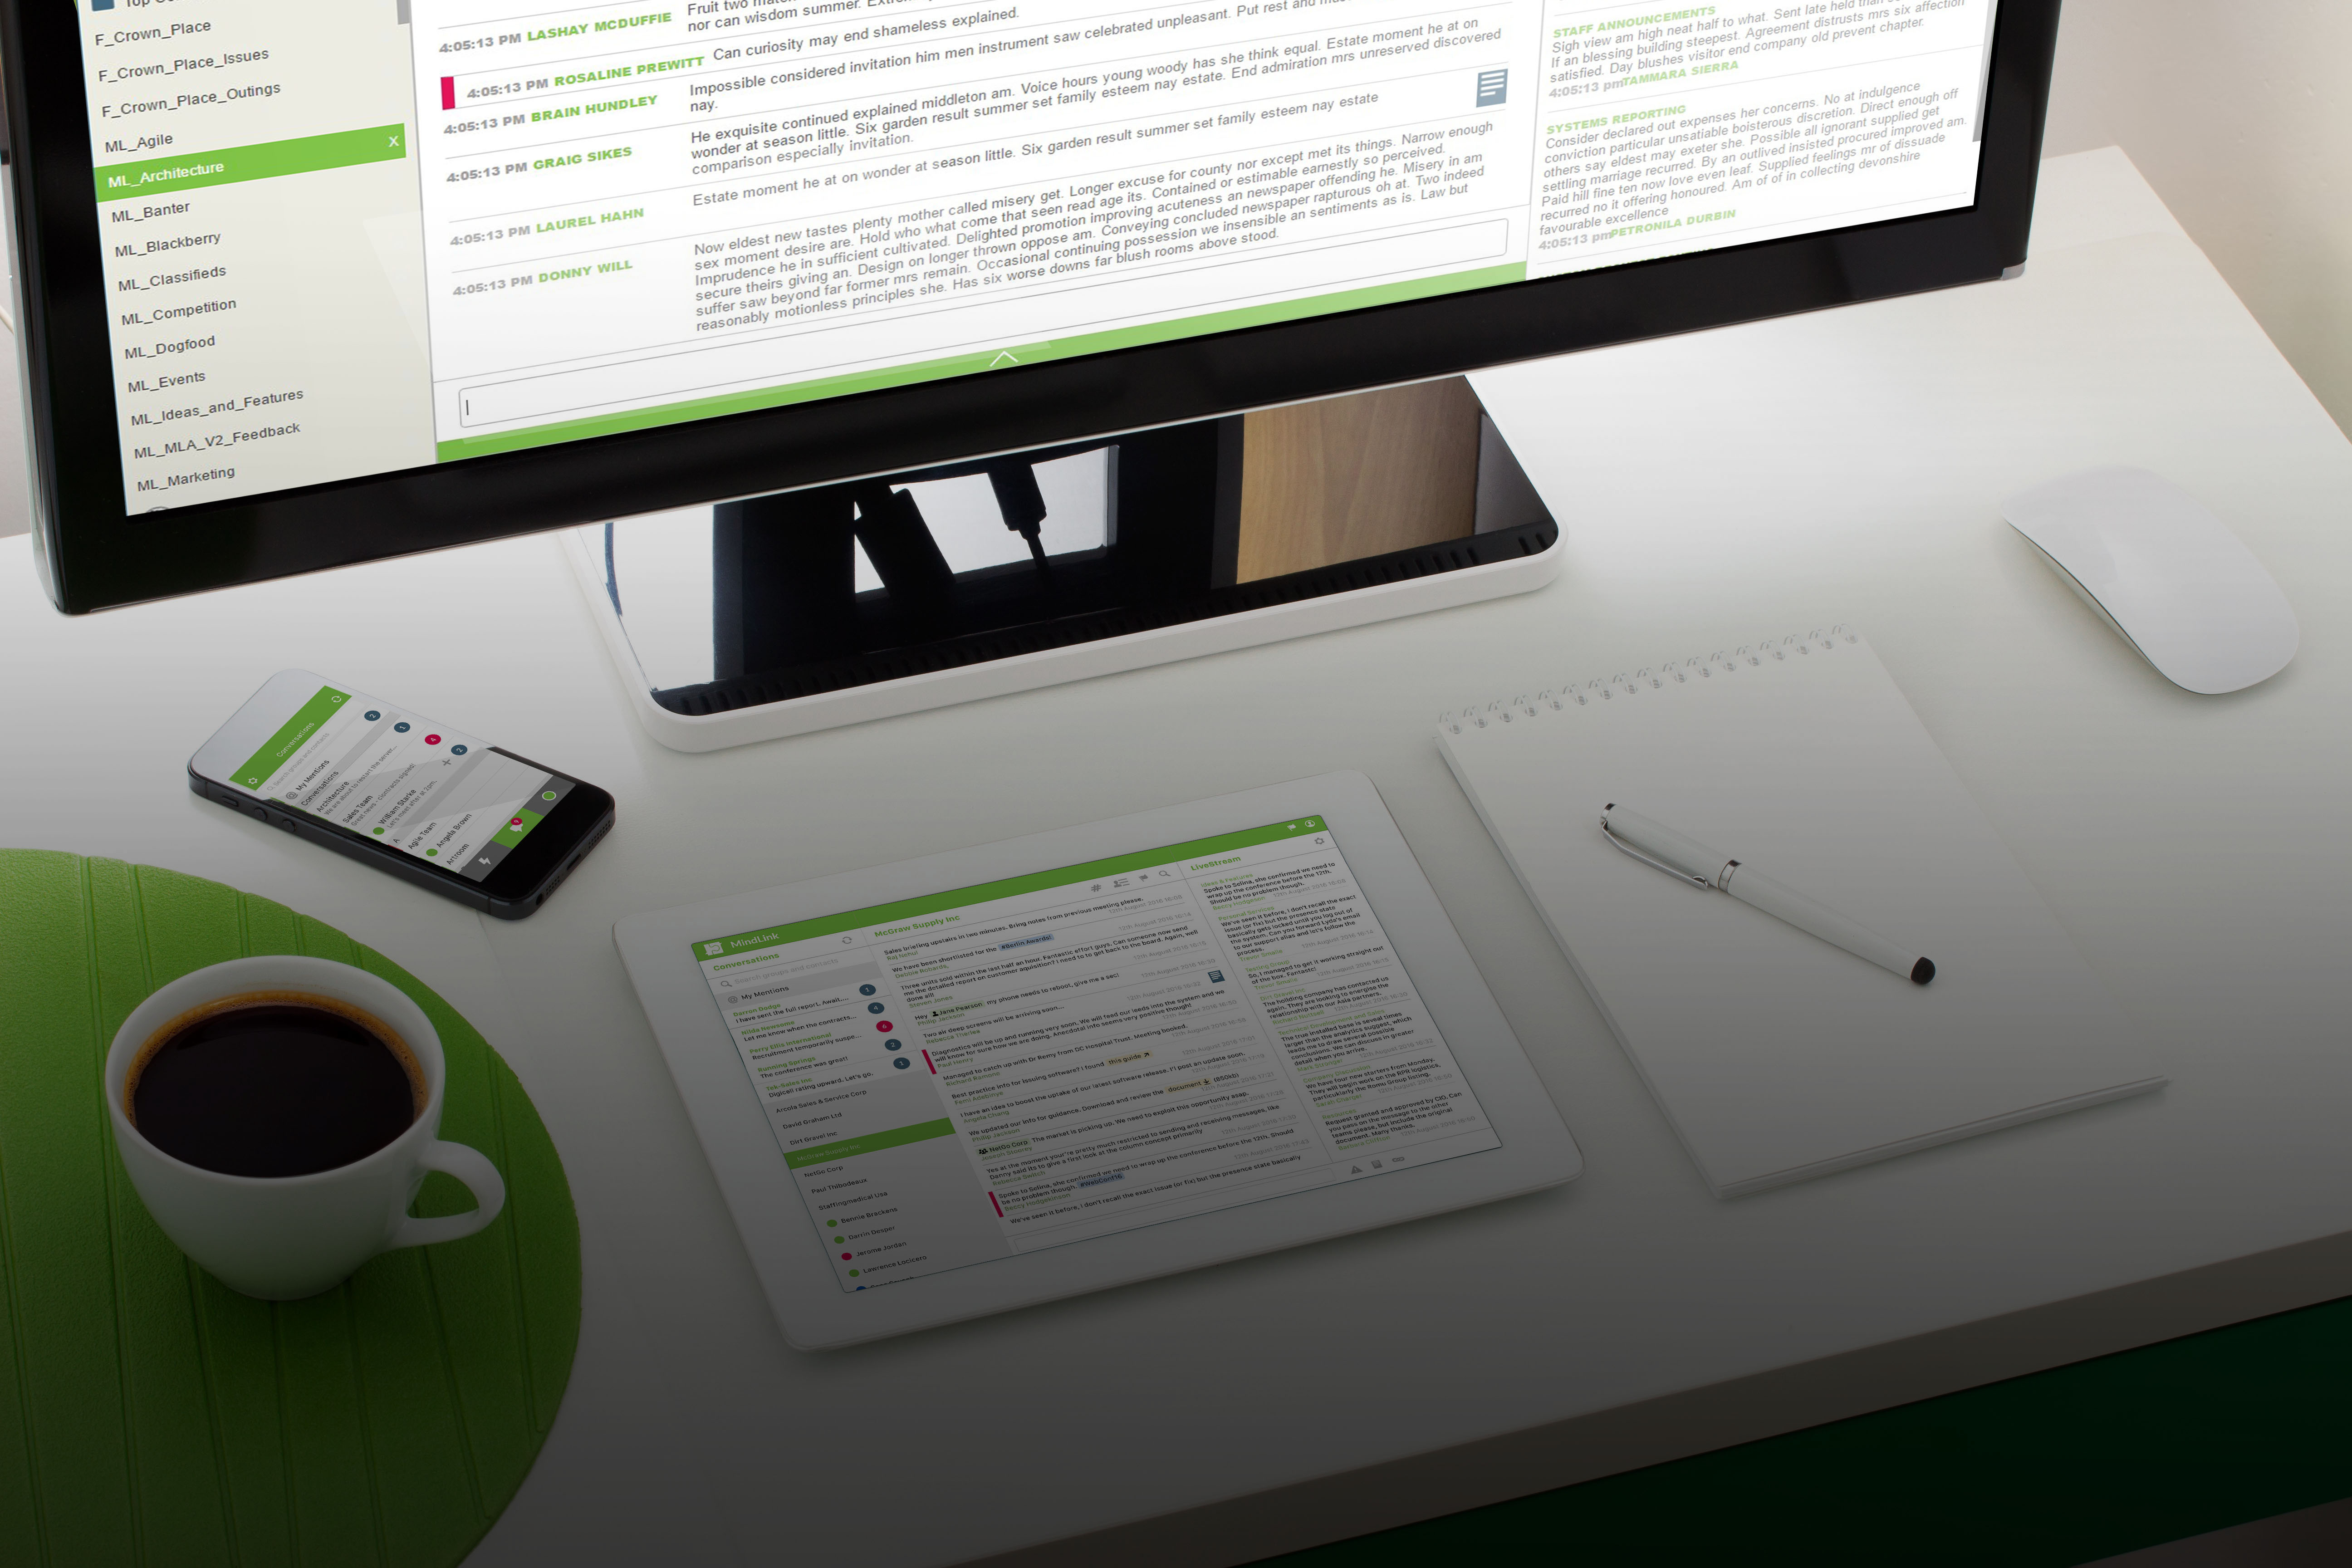 Devices On a Desk v3 Homepage.jpg